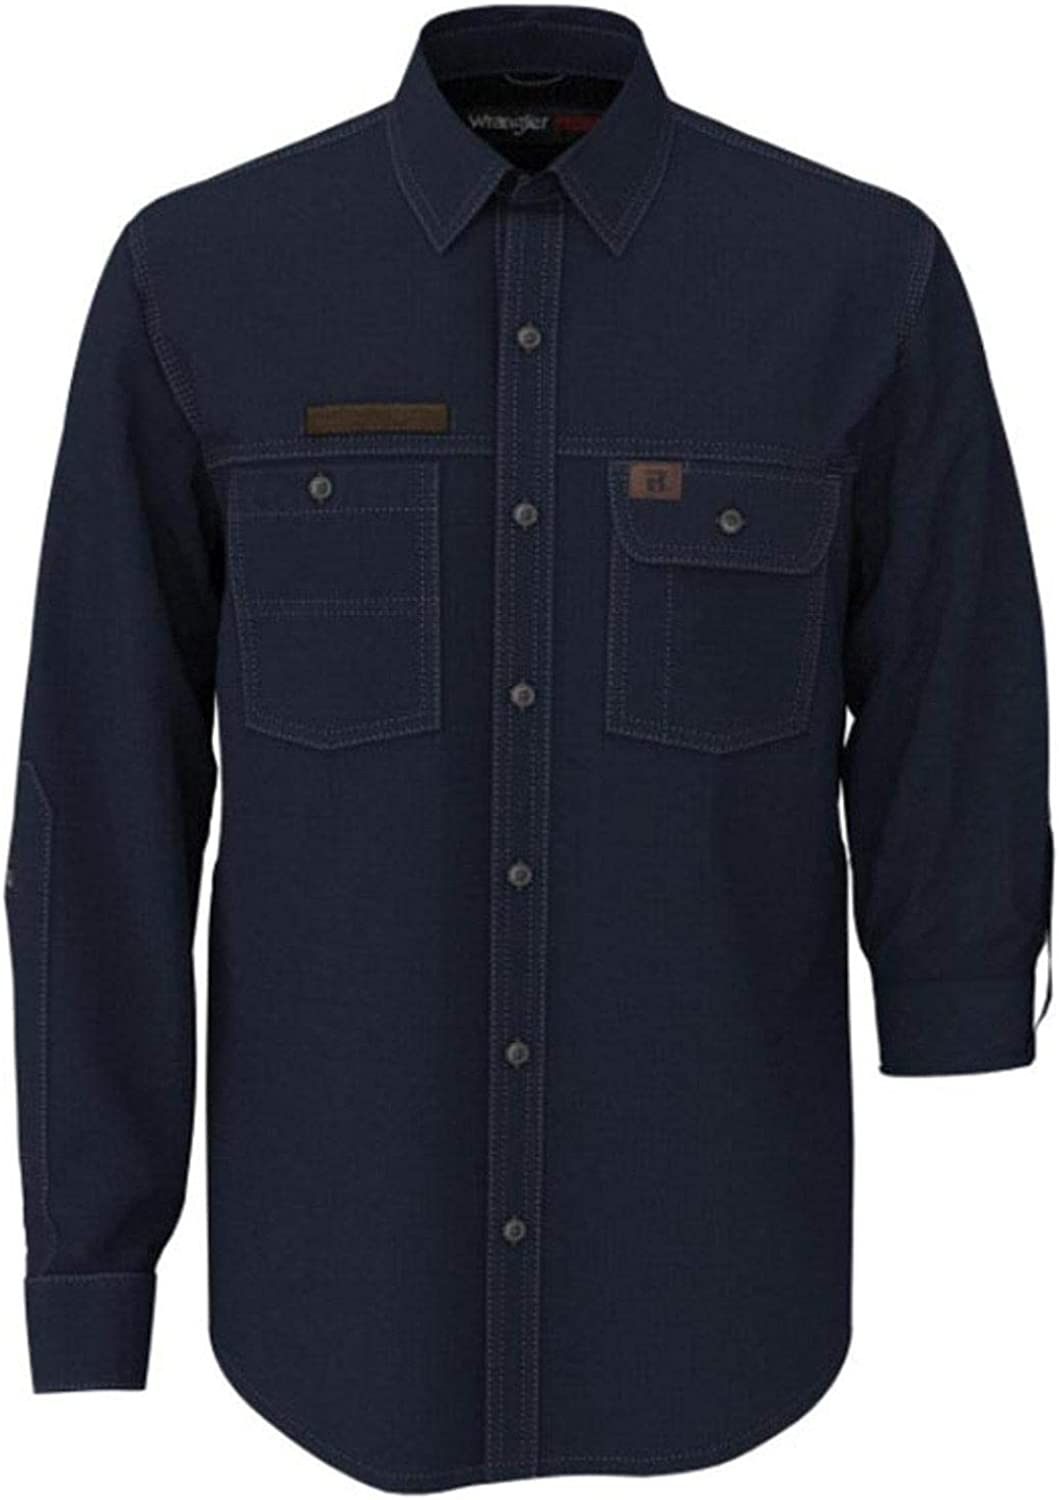 Wrangler Men's Riggs Solid Navy Vented Long Sleeve Button-Down Work Shirt Tall Navy Large Tall